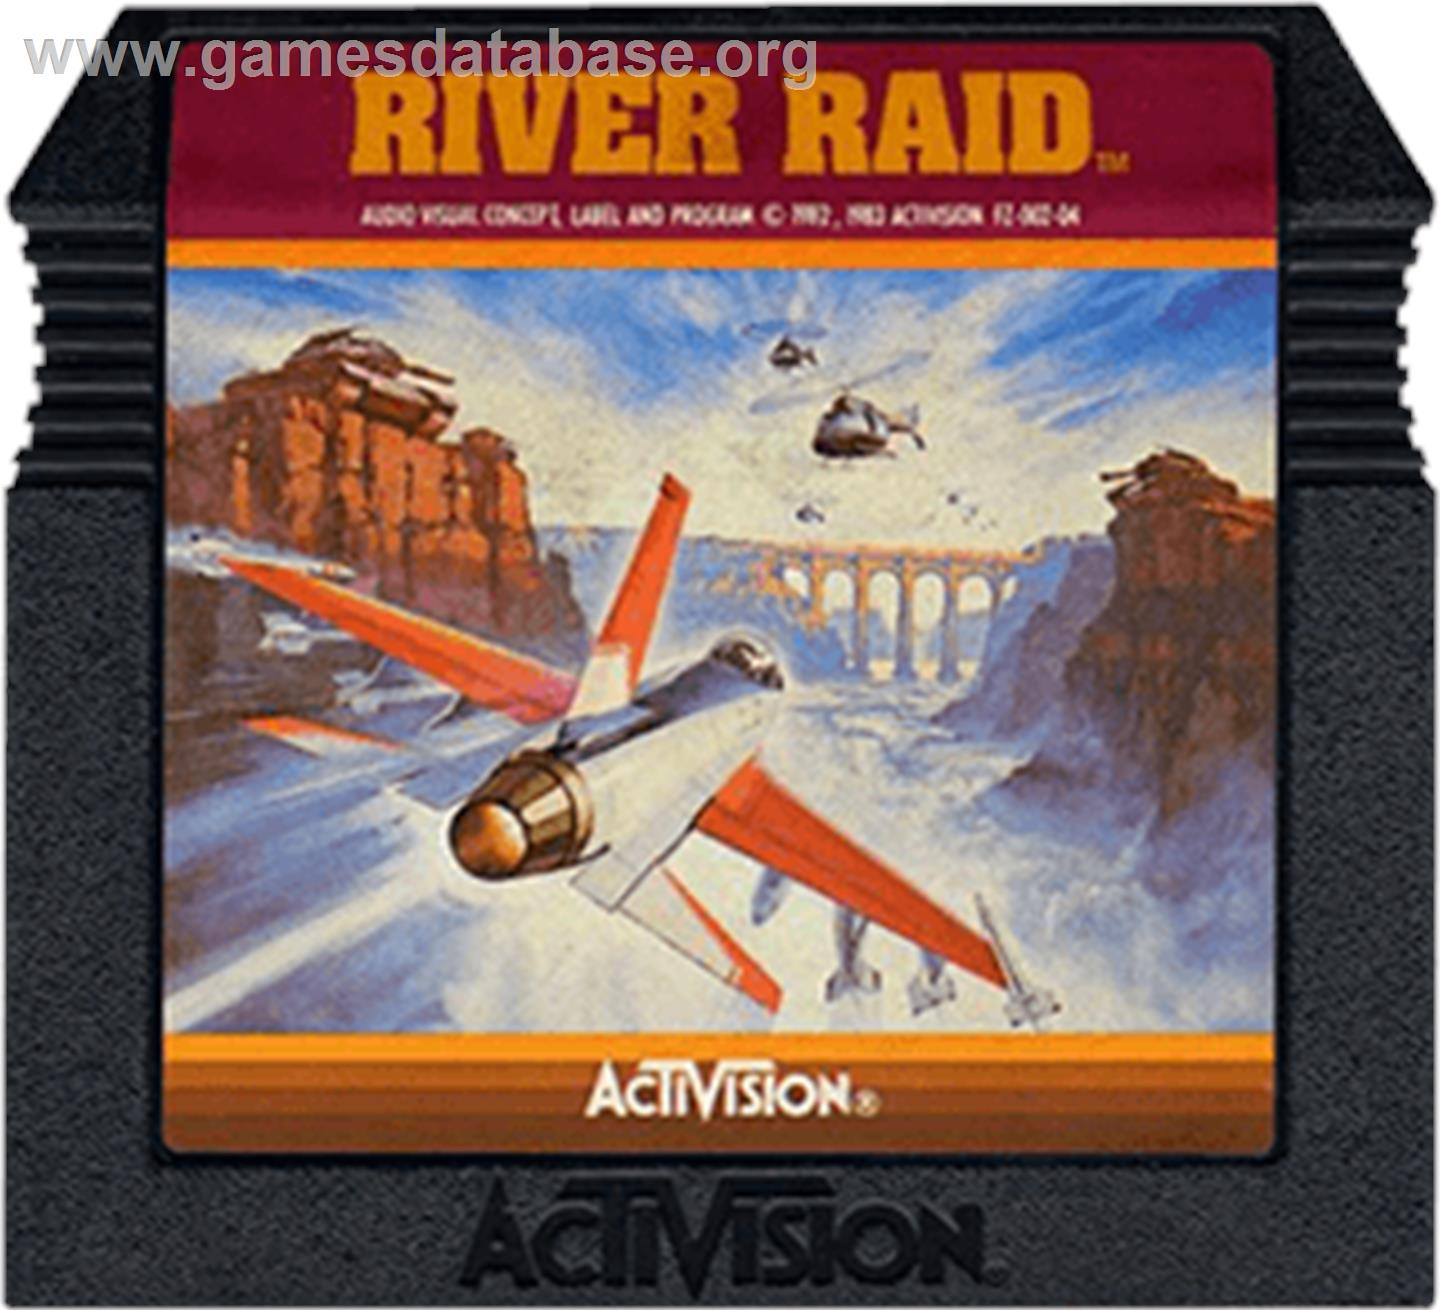 River Raid - Atari 5200 - Artwork - Cartridge